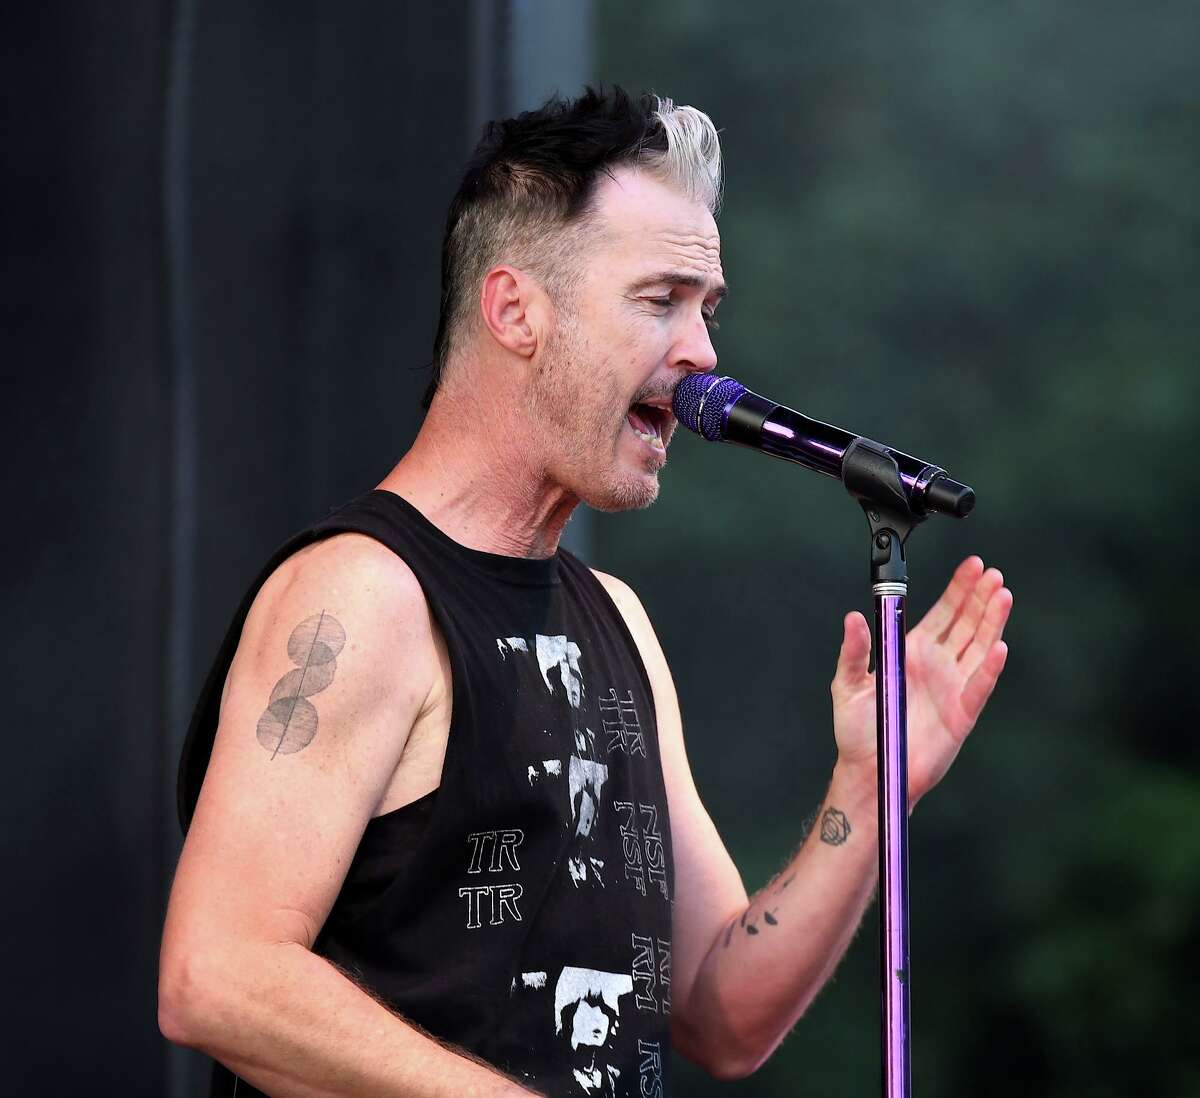 Lead vocalist Michael Fitzpatrick wowed the crowd at Ciuccoli Field during Fitz and The Tantrums' July 5 show at The Ridgefield Playhouse.